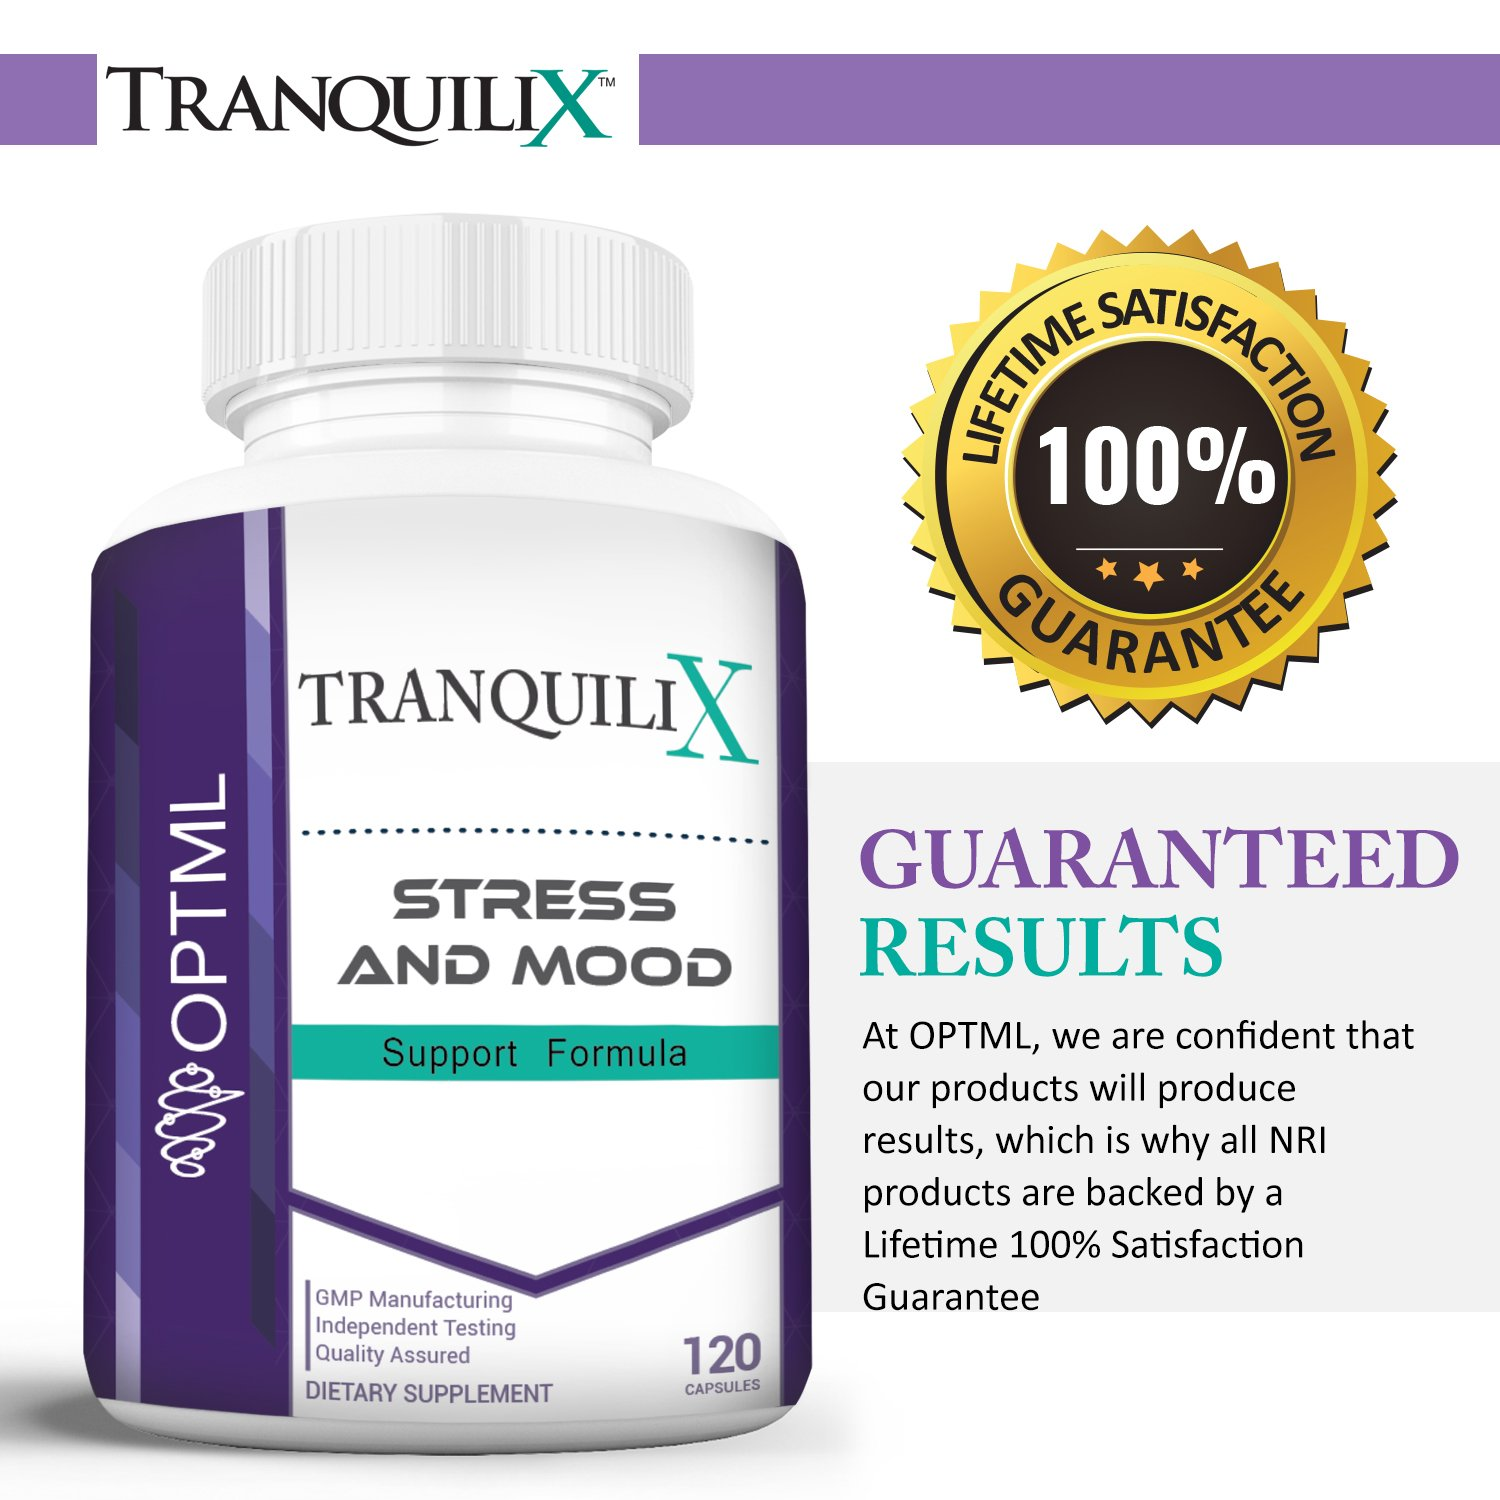 TranquiliX Anxiety and Stress Relief Formula, Advanced Anti-Anxiety Mood  Support, Sleep Aid, Reduce Panic